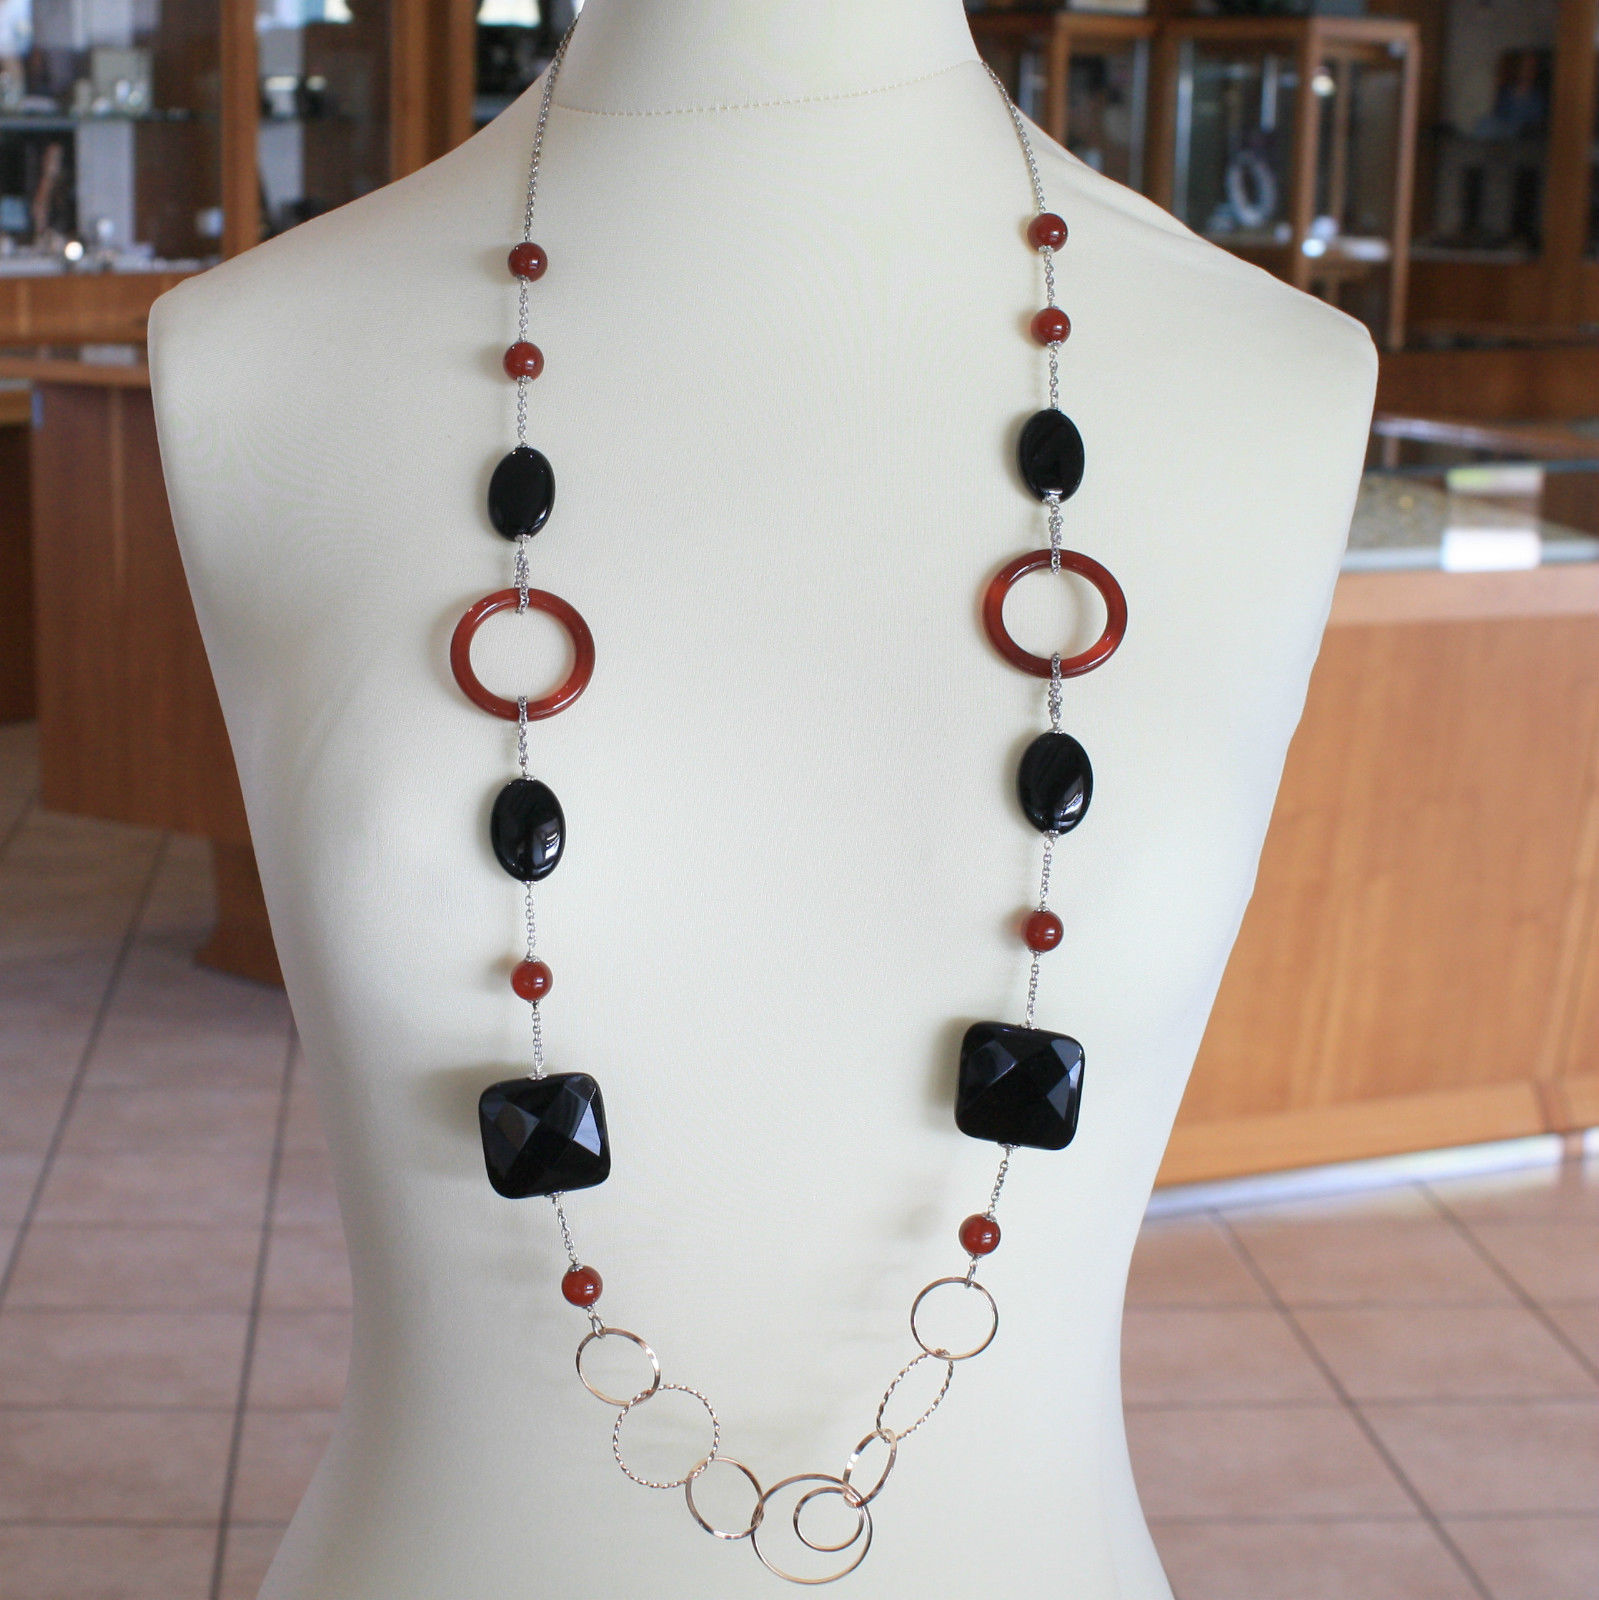 SOLID .925 RHODIUM SILVER & PLATED ROSE GOLD LONG NECKLACE WITH ONYX & CARNELIAN